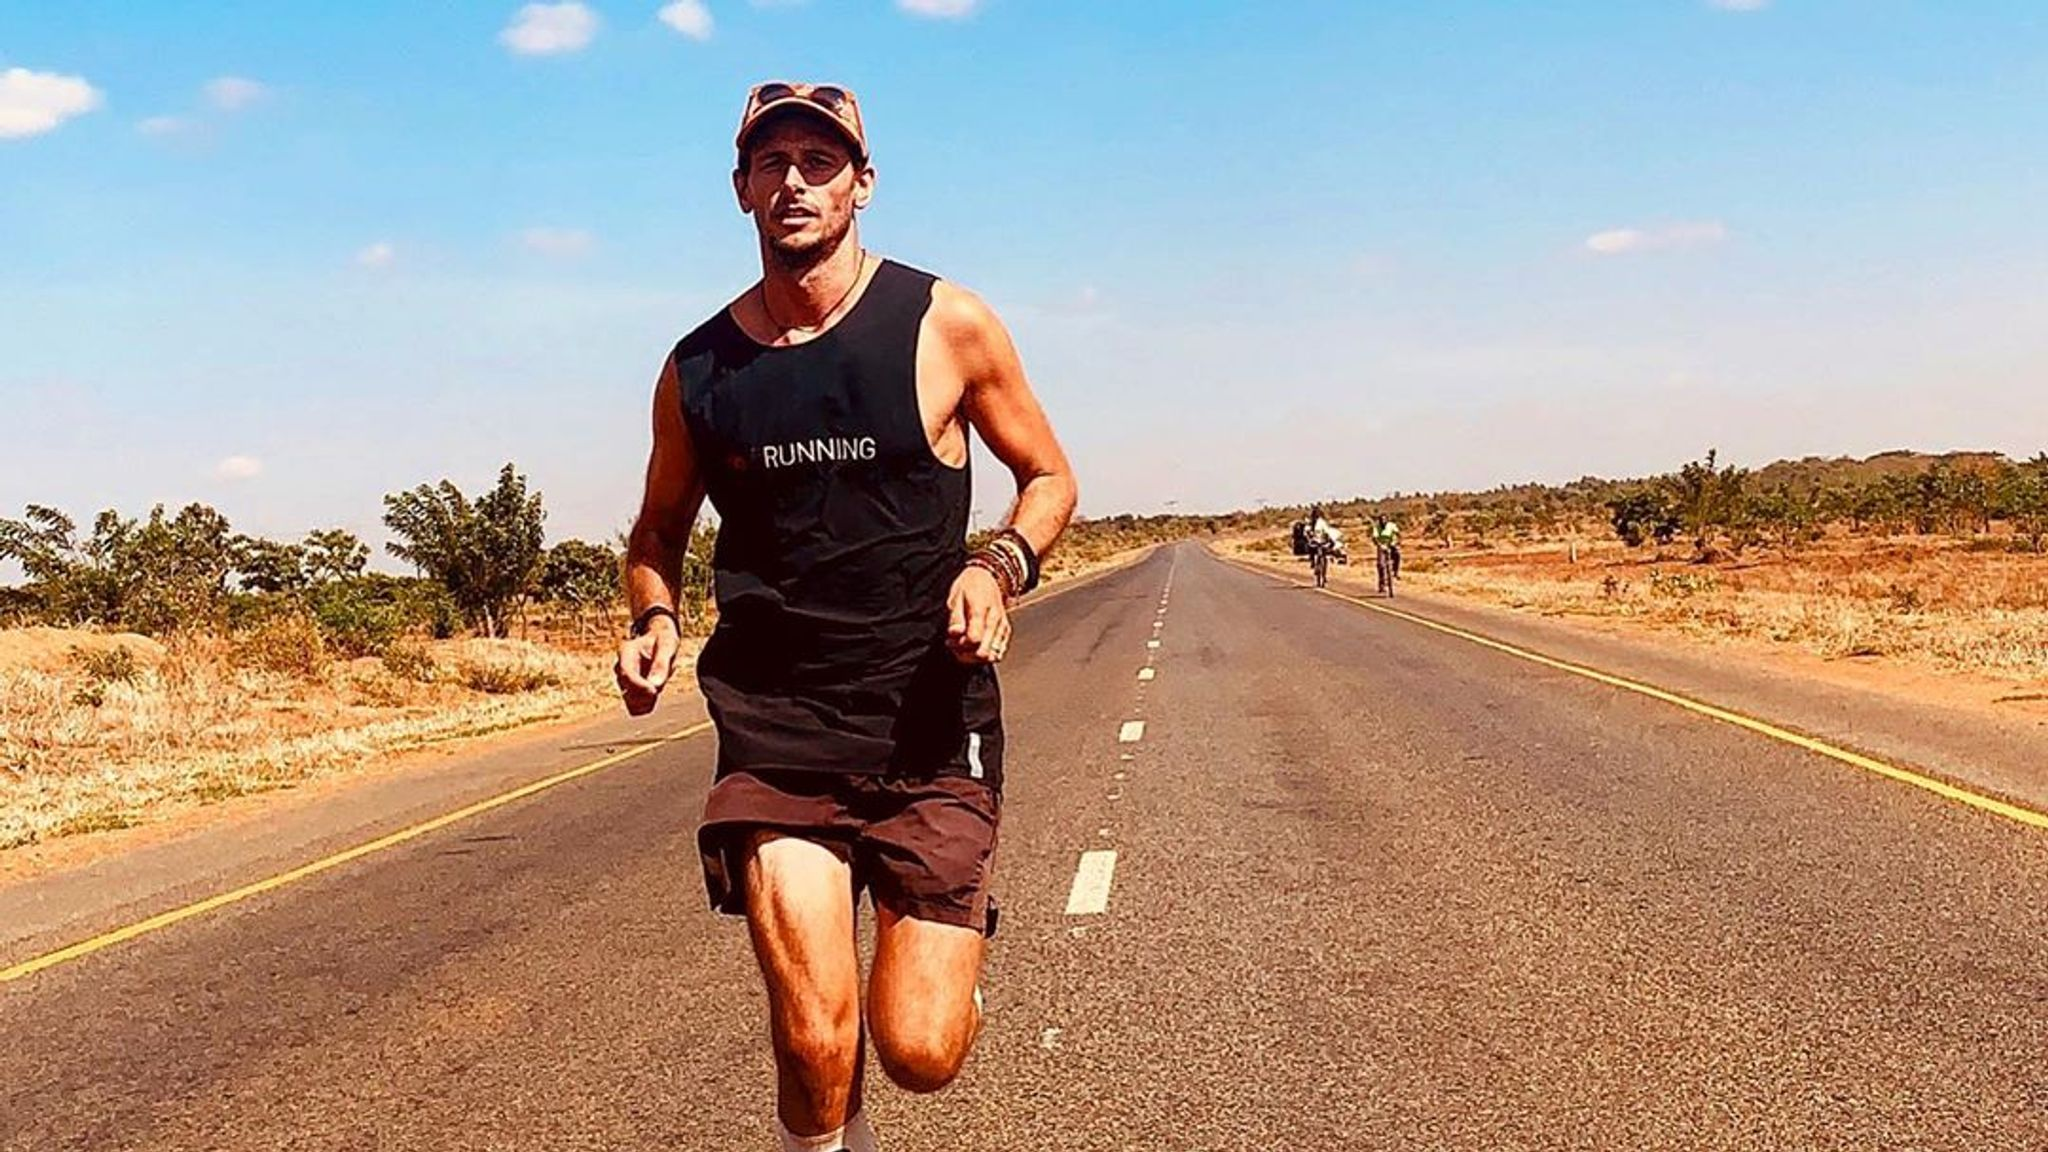 196 marathons, 196 countries: Nick Butter's 'Running the World' mission